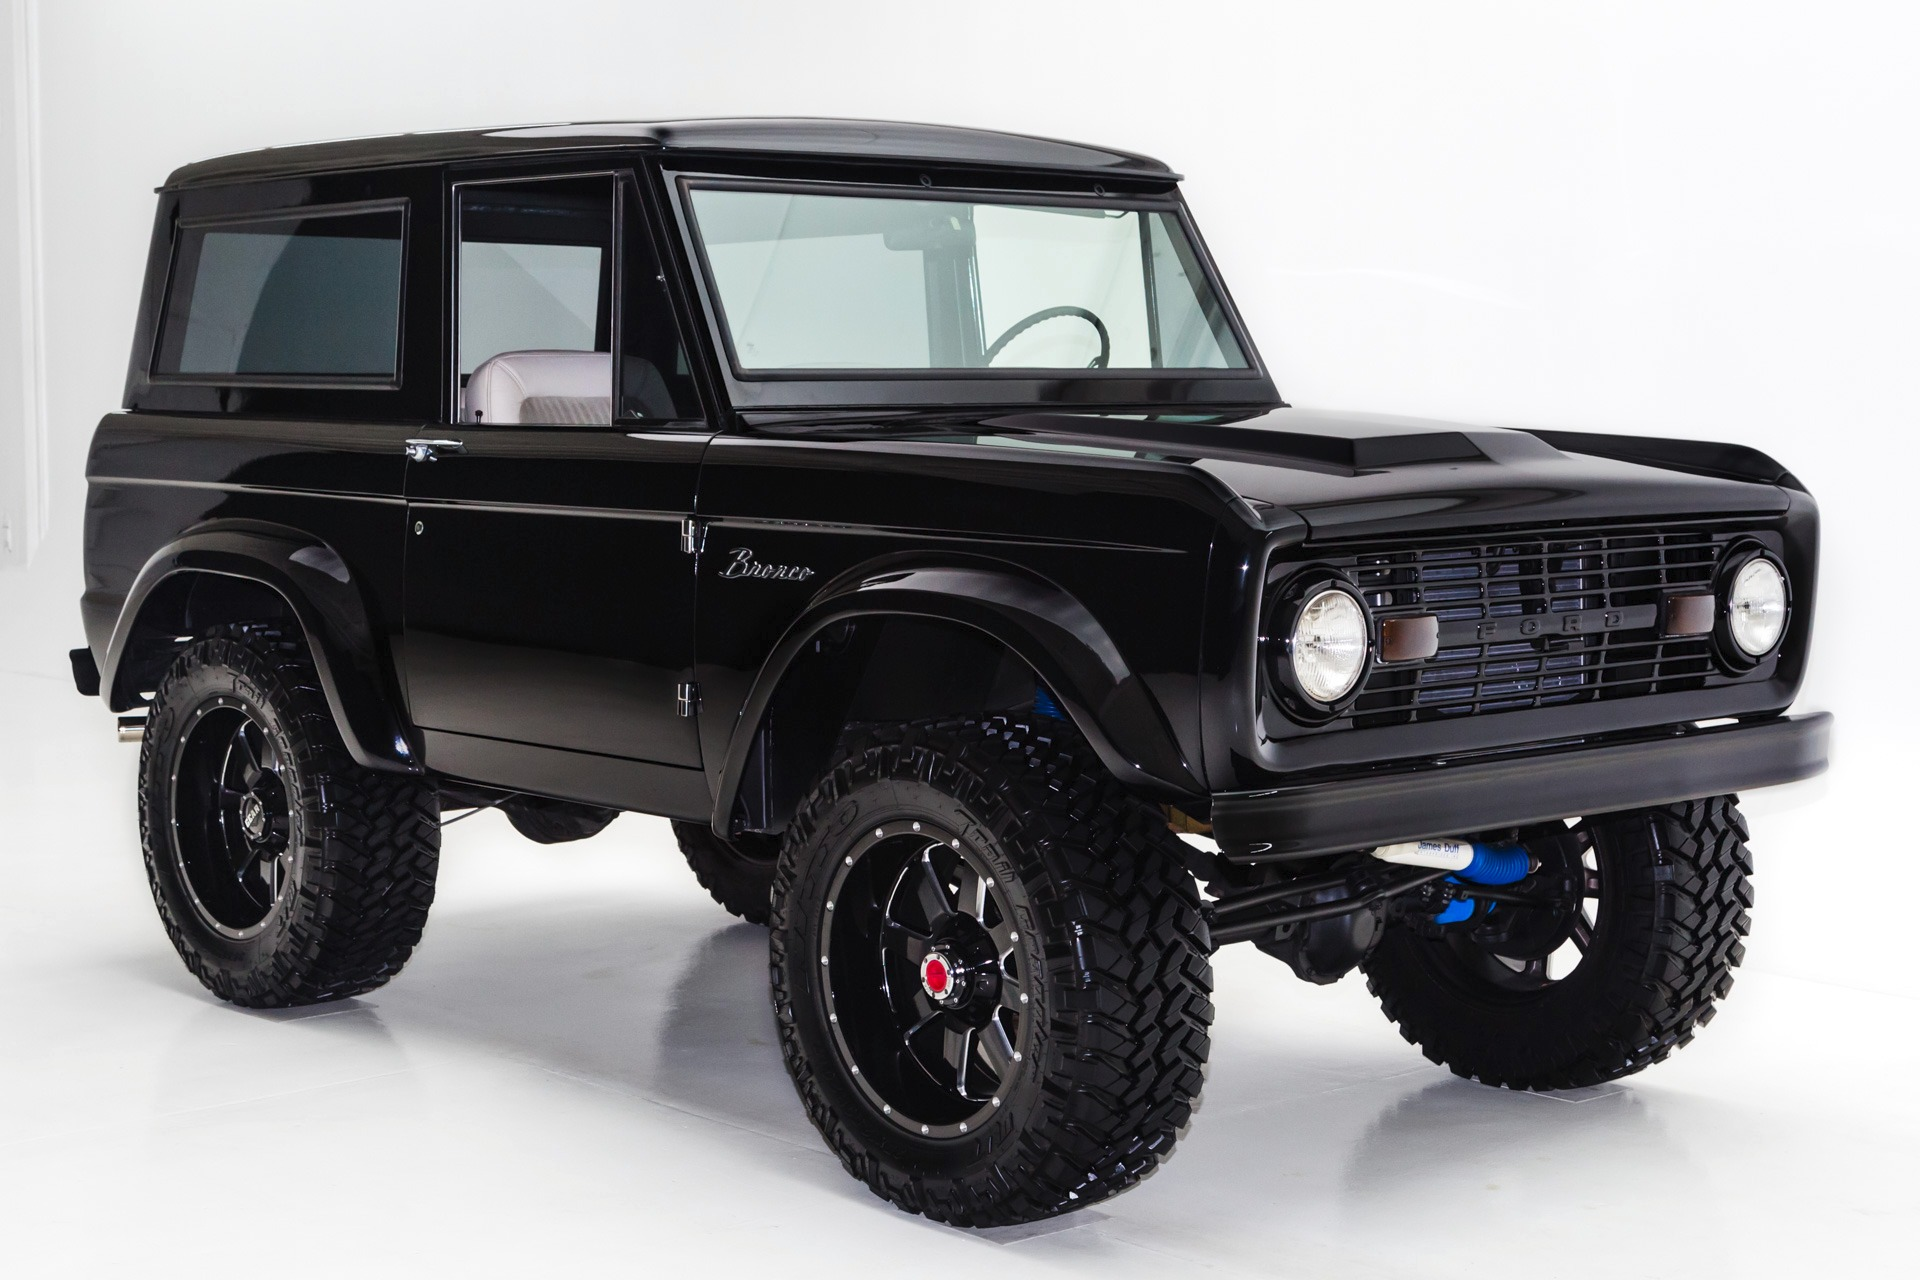 1977 Ford Bronco Jet Black Bronco 302 Lifted